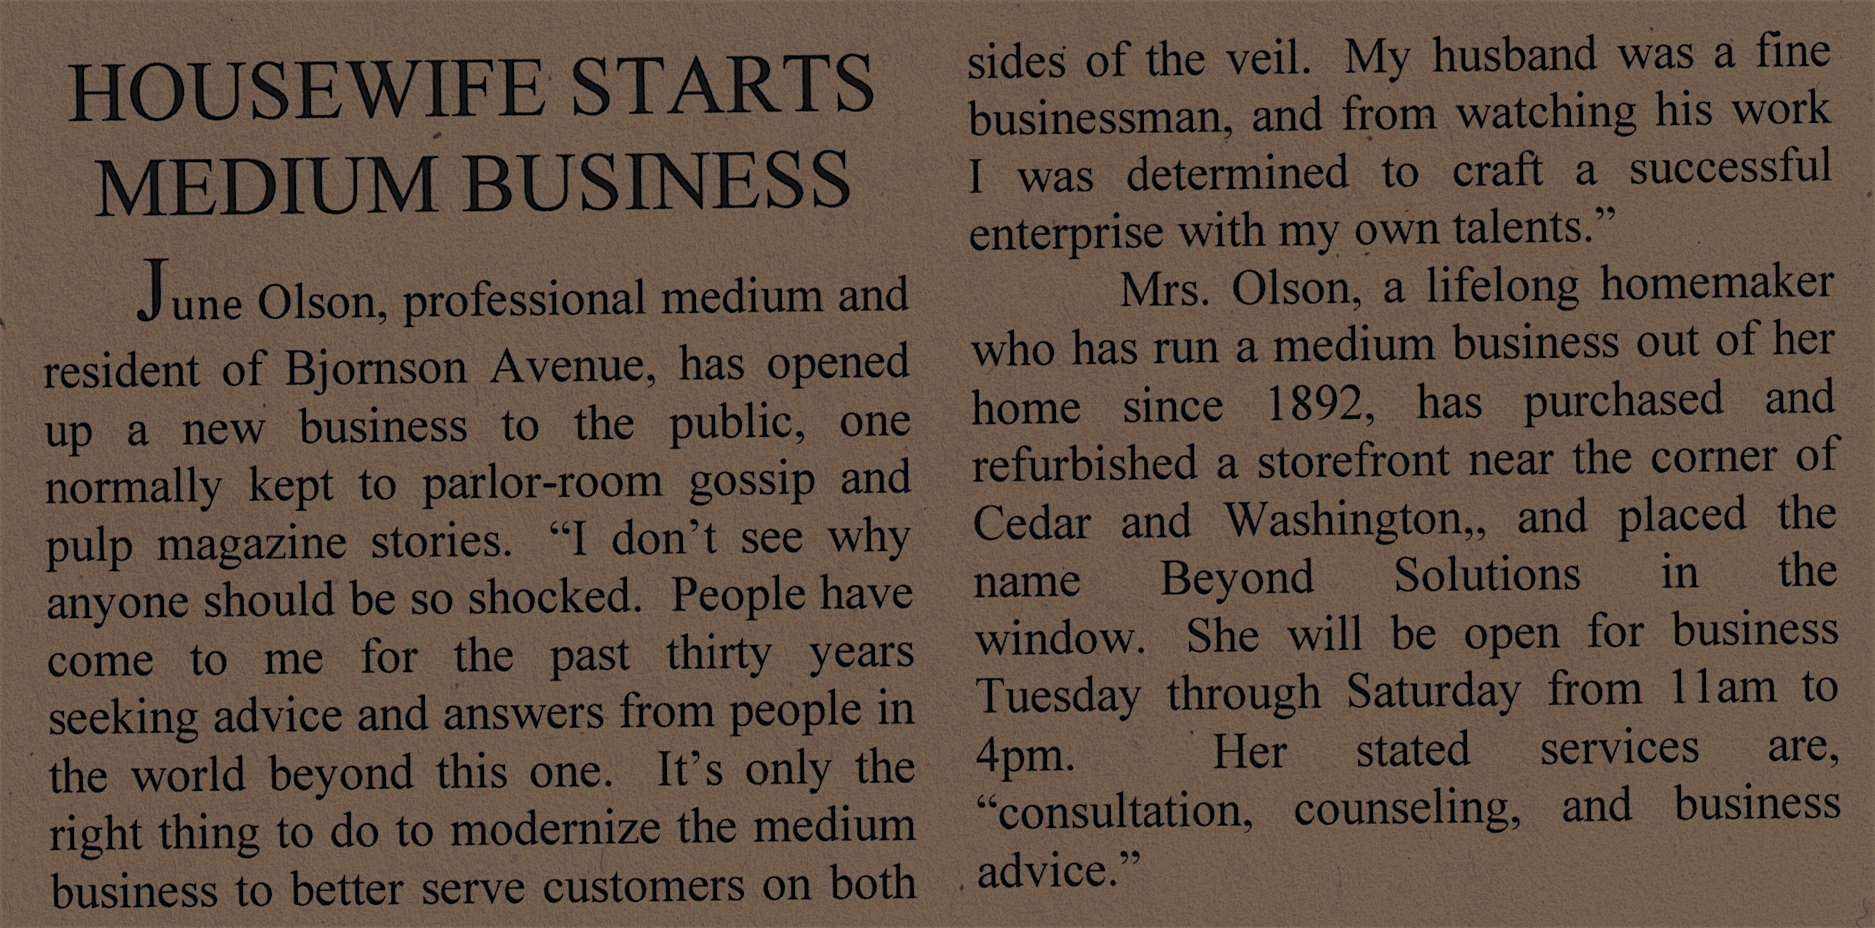 Article announcing the opening of Beyond Solutions in 1922